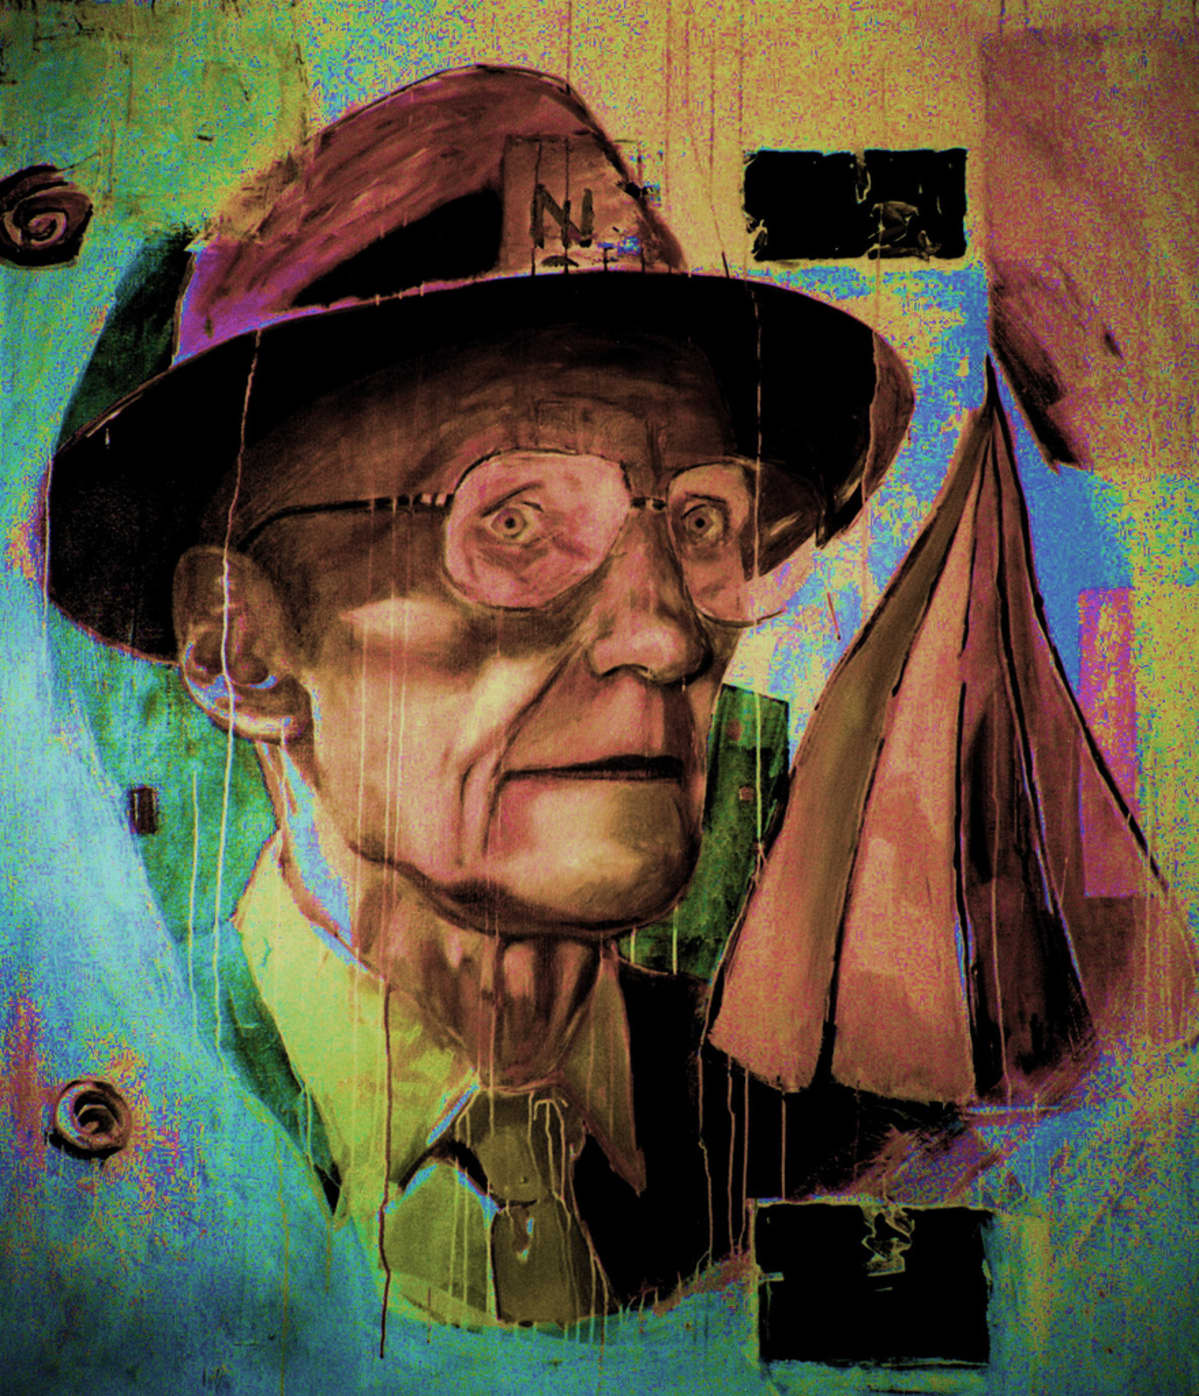 Christiaan Tonnis, William S. Burroughs